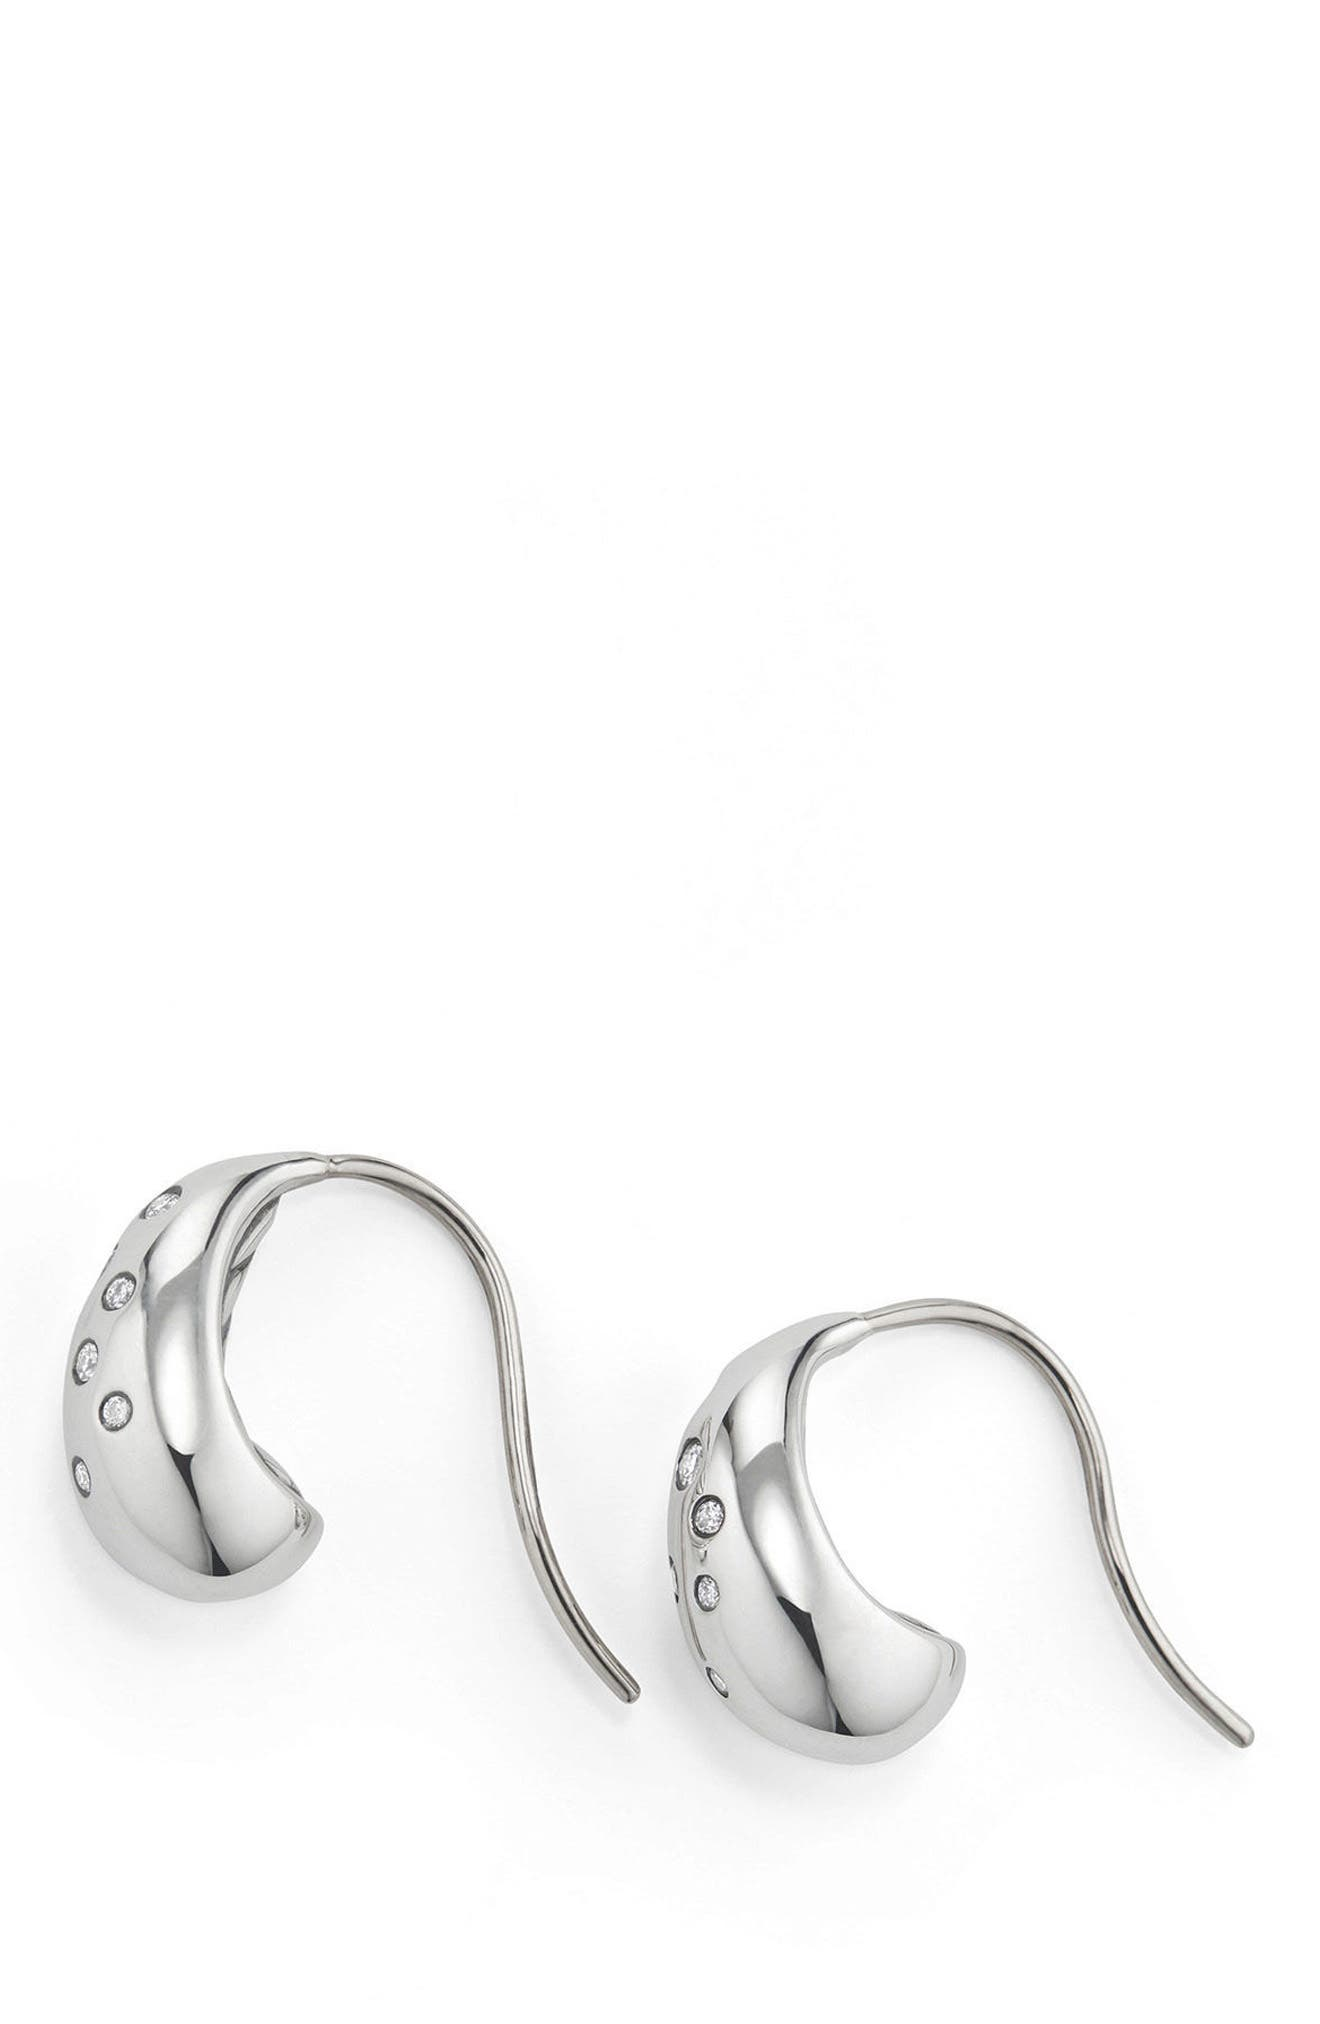 Pure Form Earrings with Diamonds, 15mm,                         Main,                         color, Silver